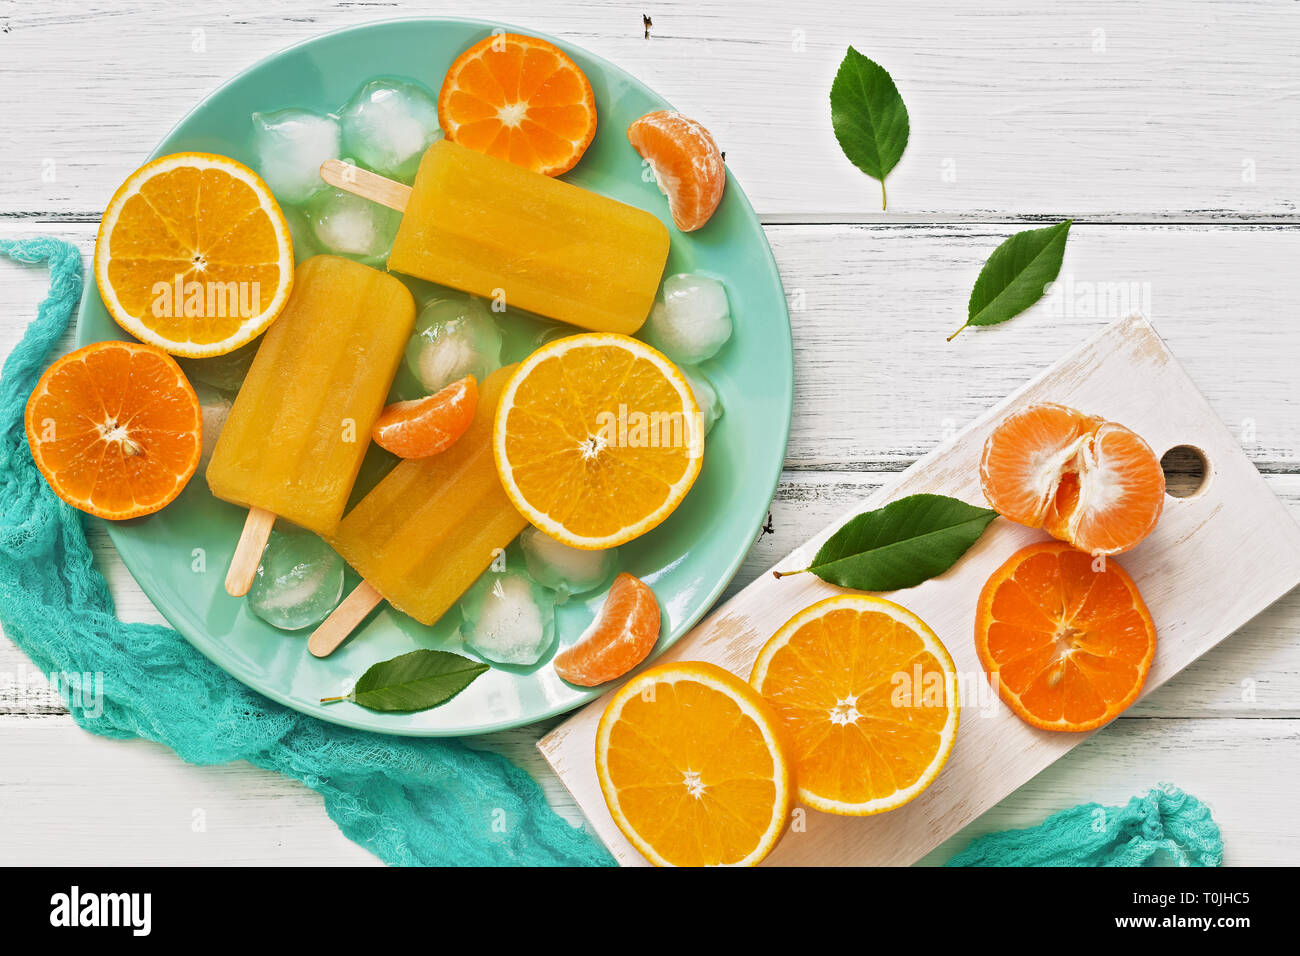 Popsicle orange with slices of fresh orange, mandarin and green leaves on a white rustic plank table. Top view, flat lay. Stock Photo